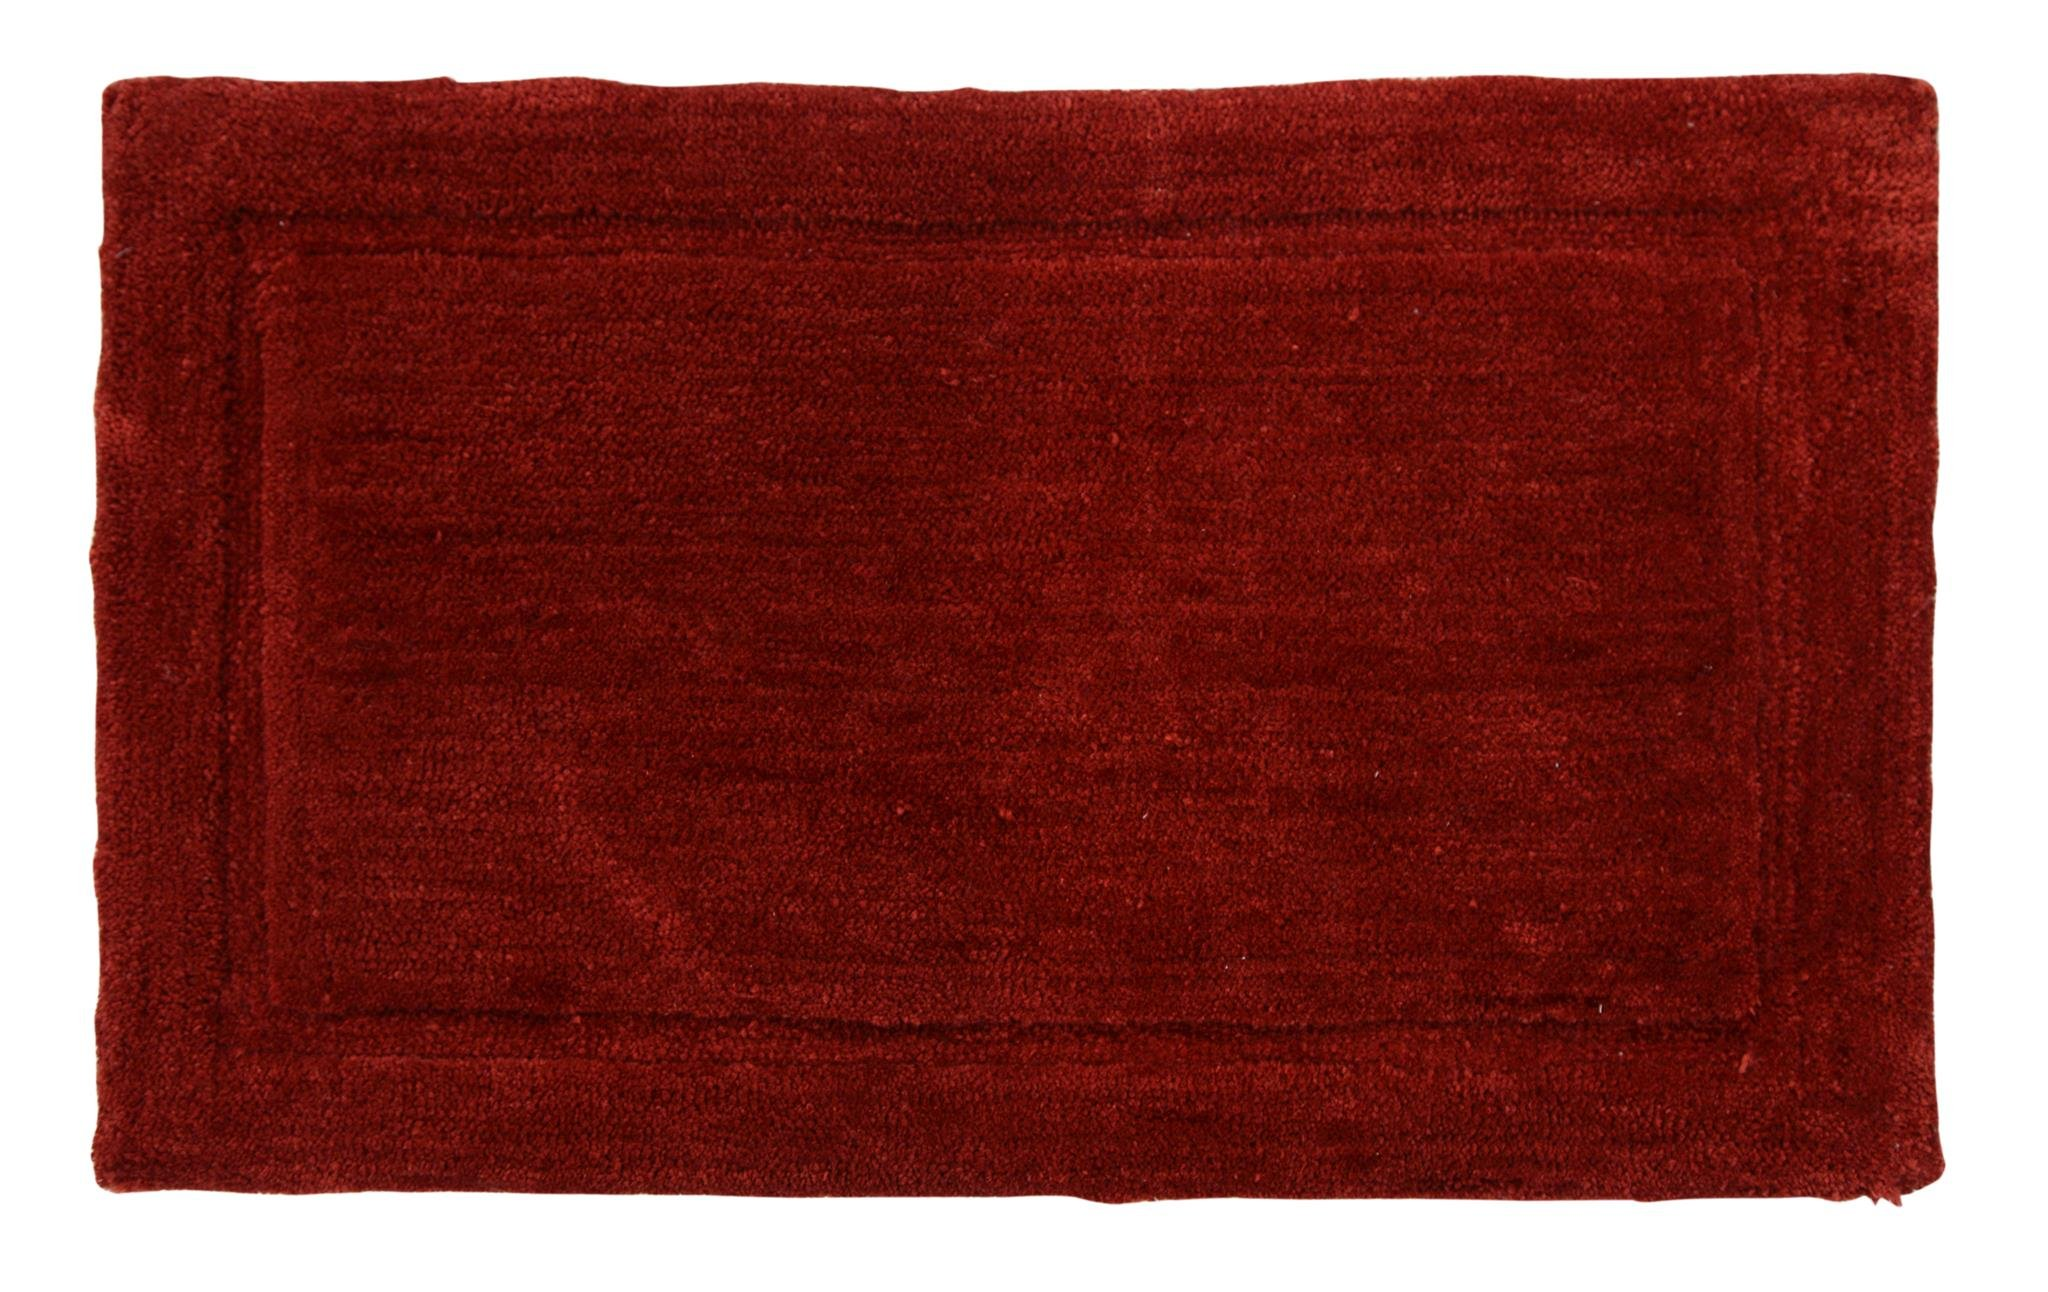 WARISI - Track Collection - Solids microfiber Bathroom, Bedroom Rug, 34 x 21 inches (Marsala) by WARISI (Image #6)